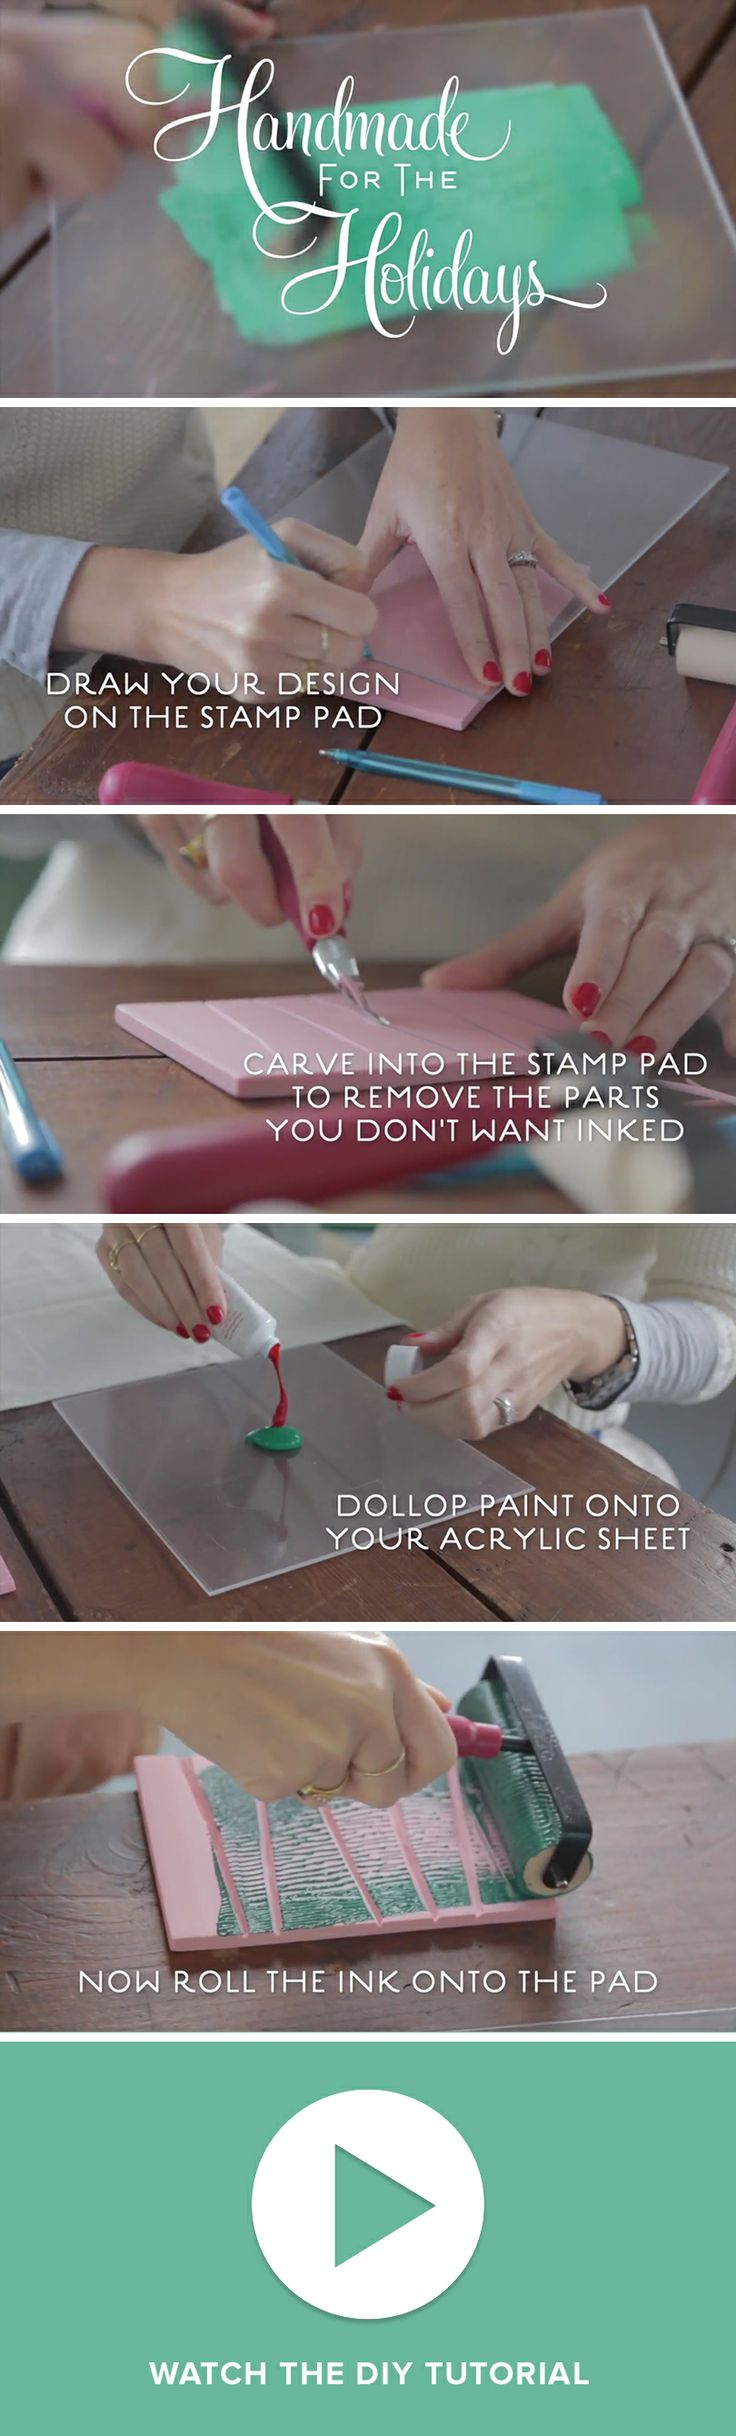 New DIY Video: Learn Block Printing in 4 Steps from Darby Smart and Purewow